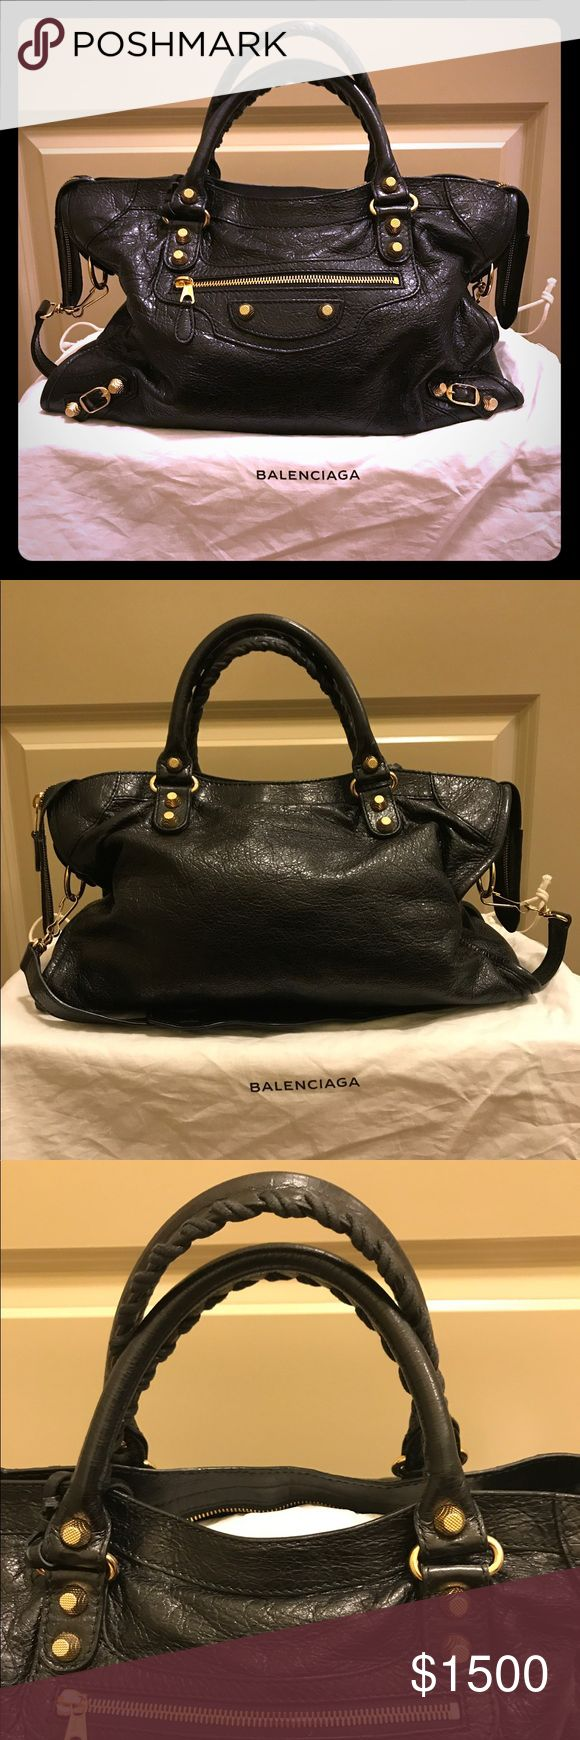 Balenciaga Arena leather Giant city bag. Black 10/10 condition. 100% authentic. Purchased less than a year ago. Smells new! No major wear as the pictures show. No trades Balenciaga Bags Totes